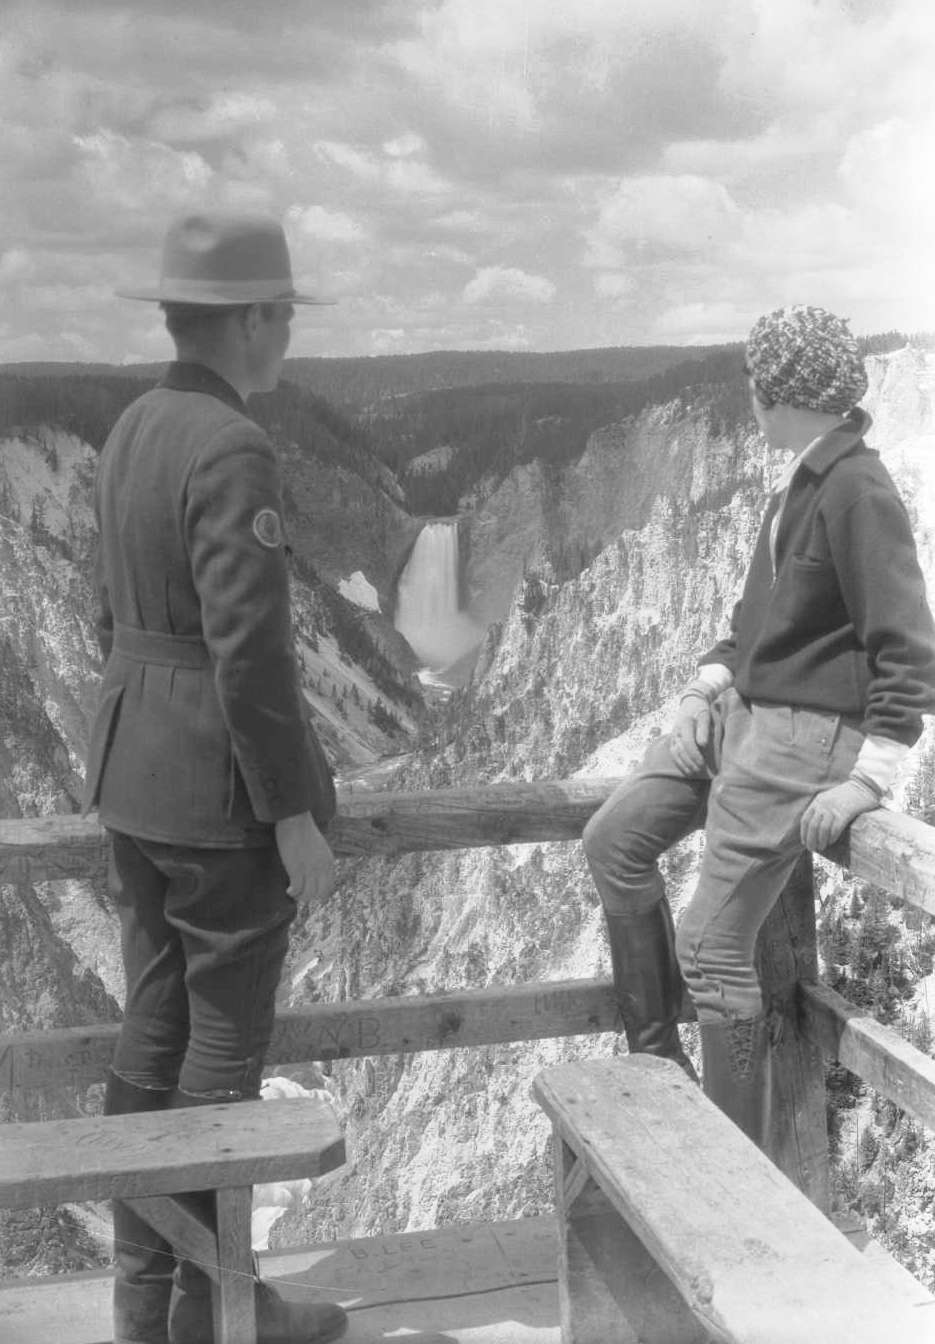 Ranger Frank Sissby and Julie Pressen of Chicago, Illinois, view the Lower Falls of the Yellowstone River and Grand Canyon of the Yellowstone